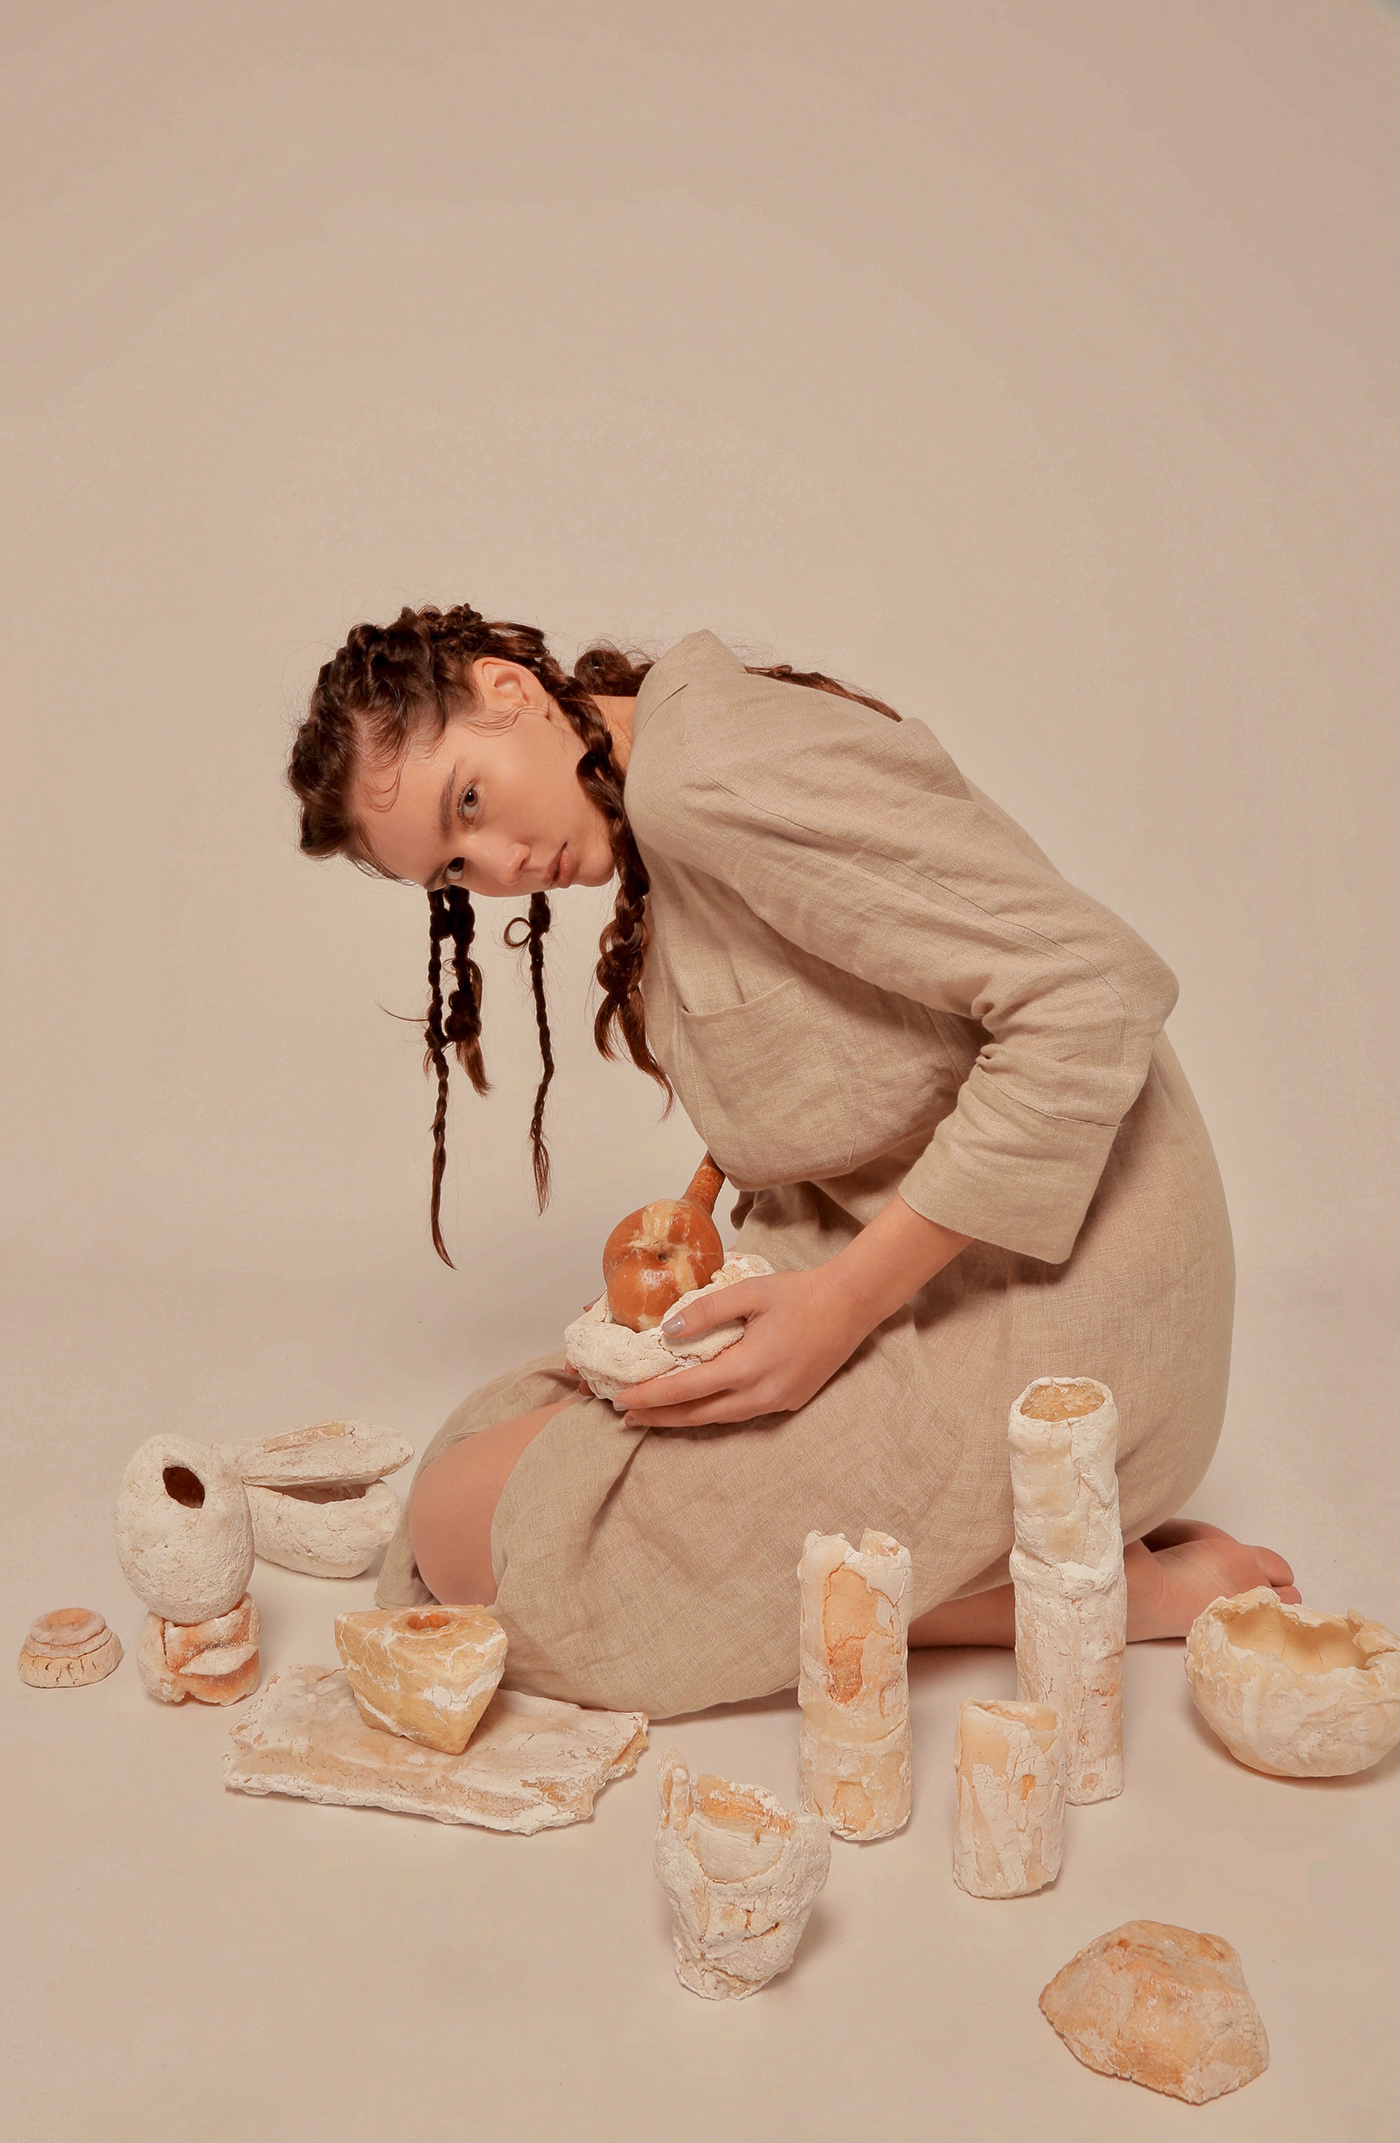 artefact craft Eating  environment Fashion  Food  materiality Nature Sustainability wellbeing